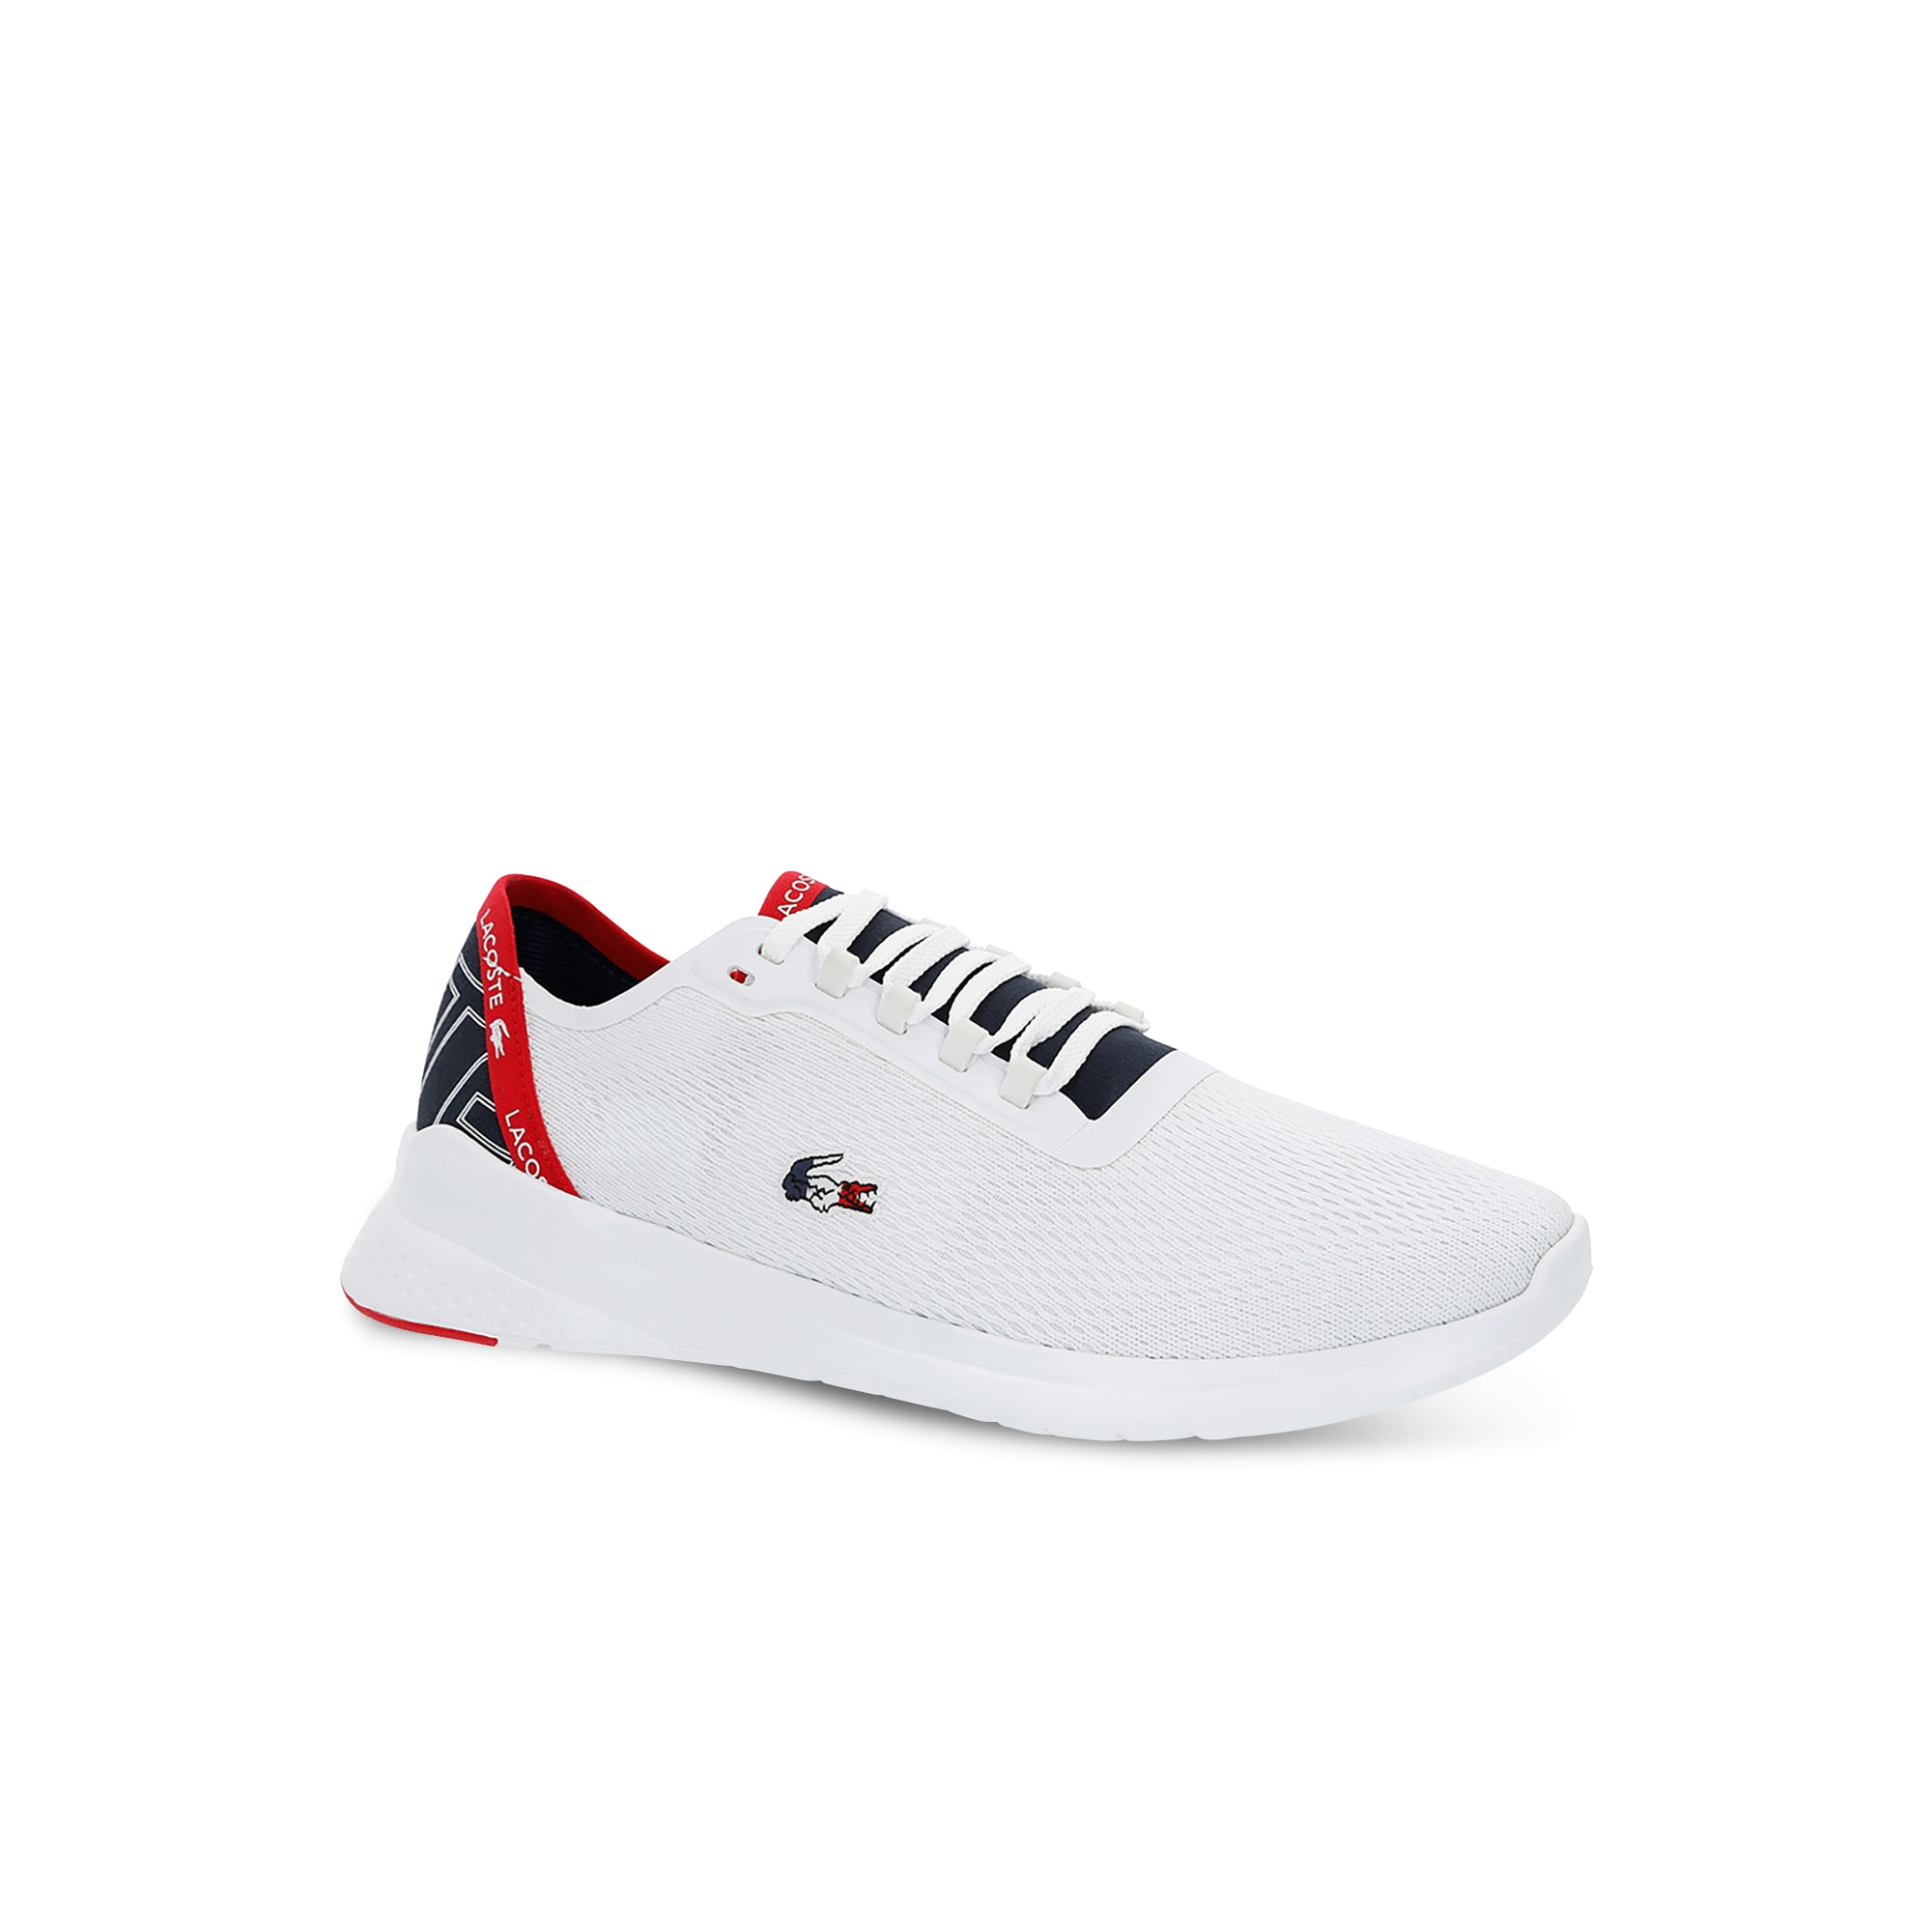 e1aba915c Men s LT Fit Sneakers with Tricolor Croc